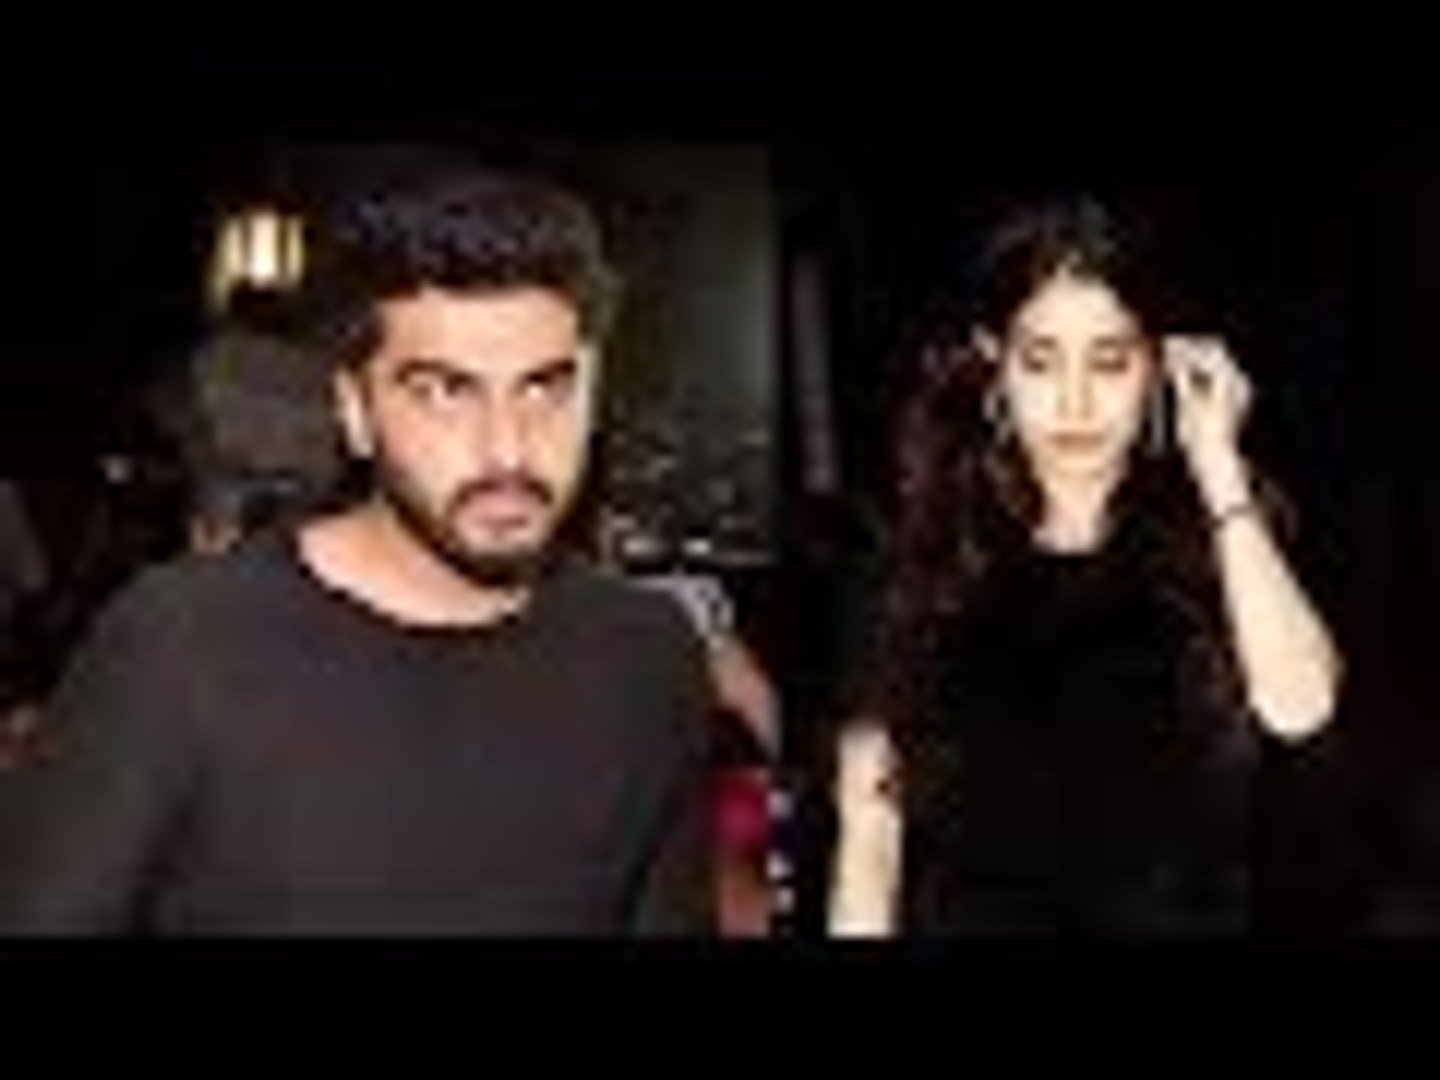 Arjun Kapoor Lashes Out At Website For Making Inappropriate Comment On Janhvi Kapoor's Dress